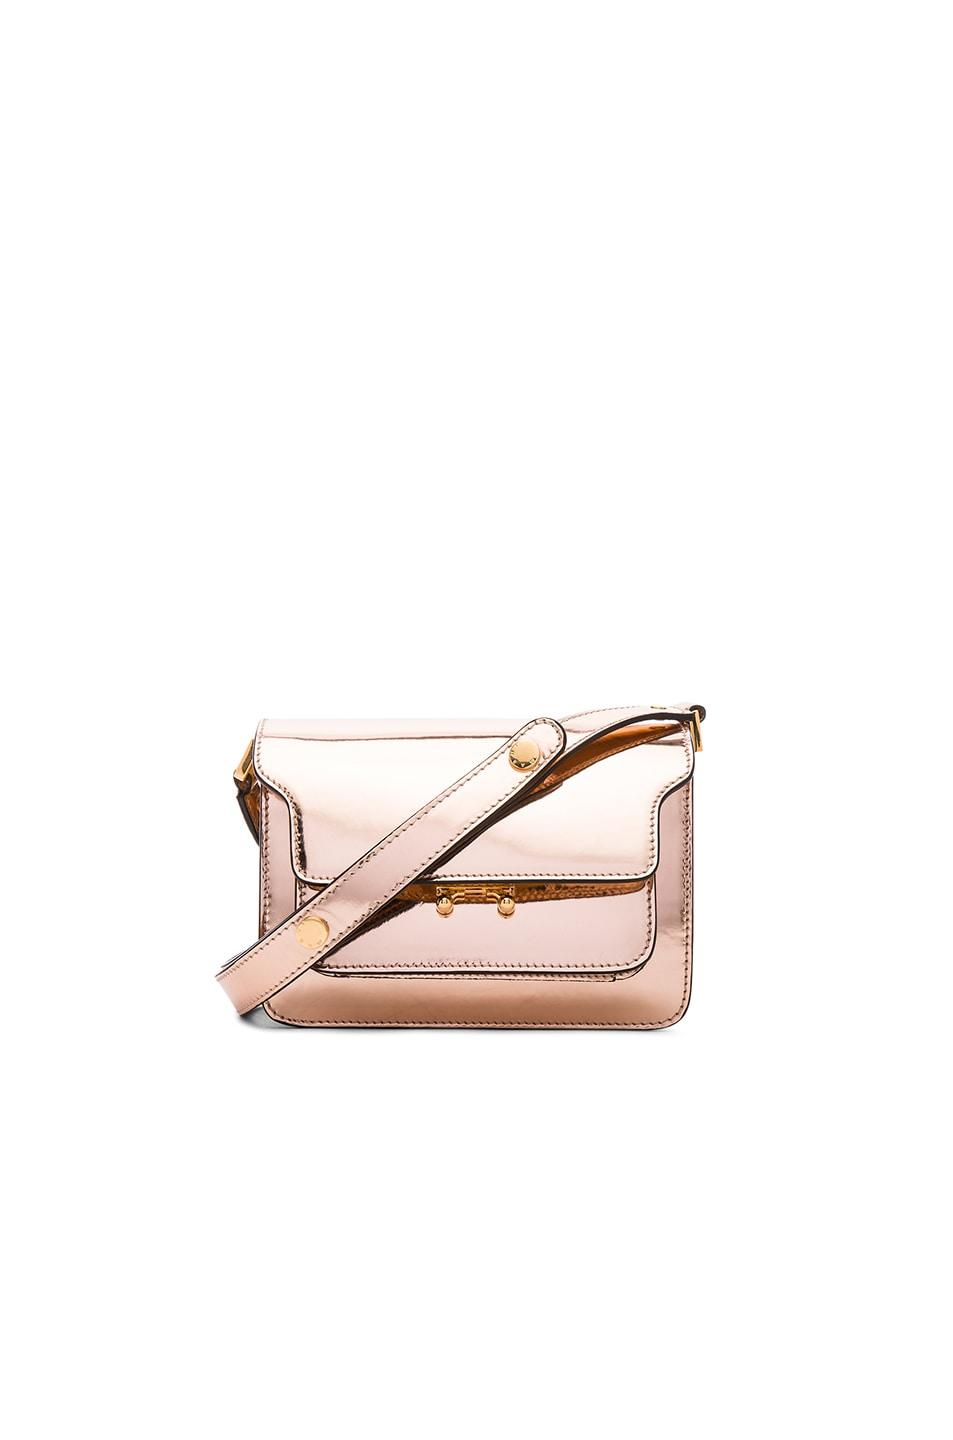 Image 1 of Marni Mini Metallic Trunk Bag in Macaroon